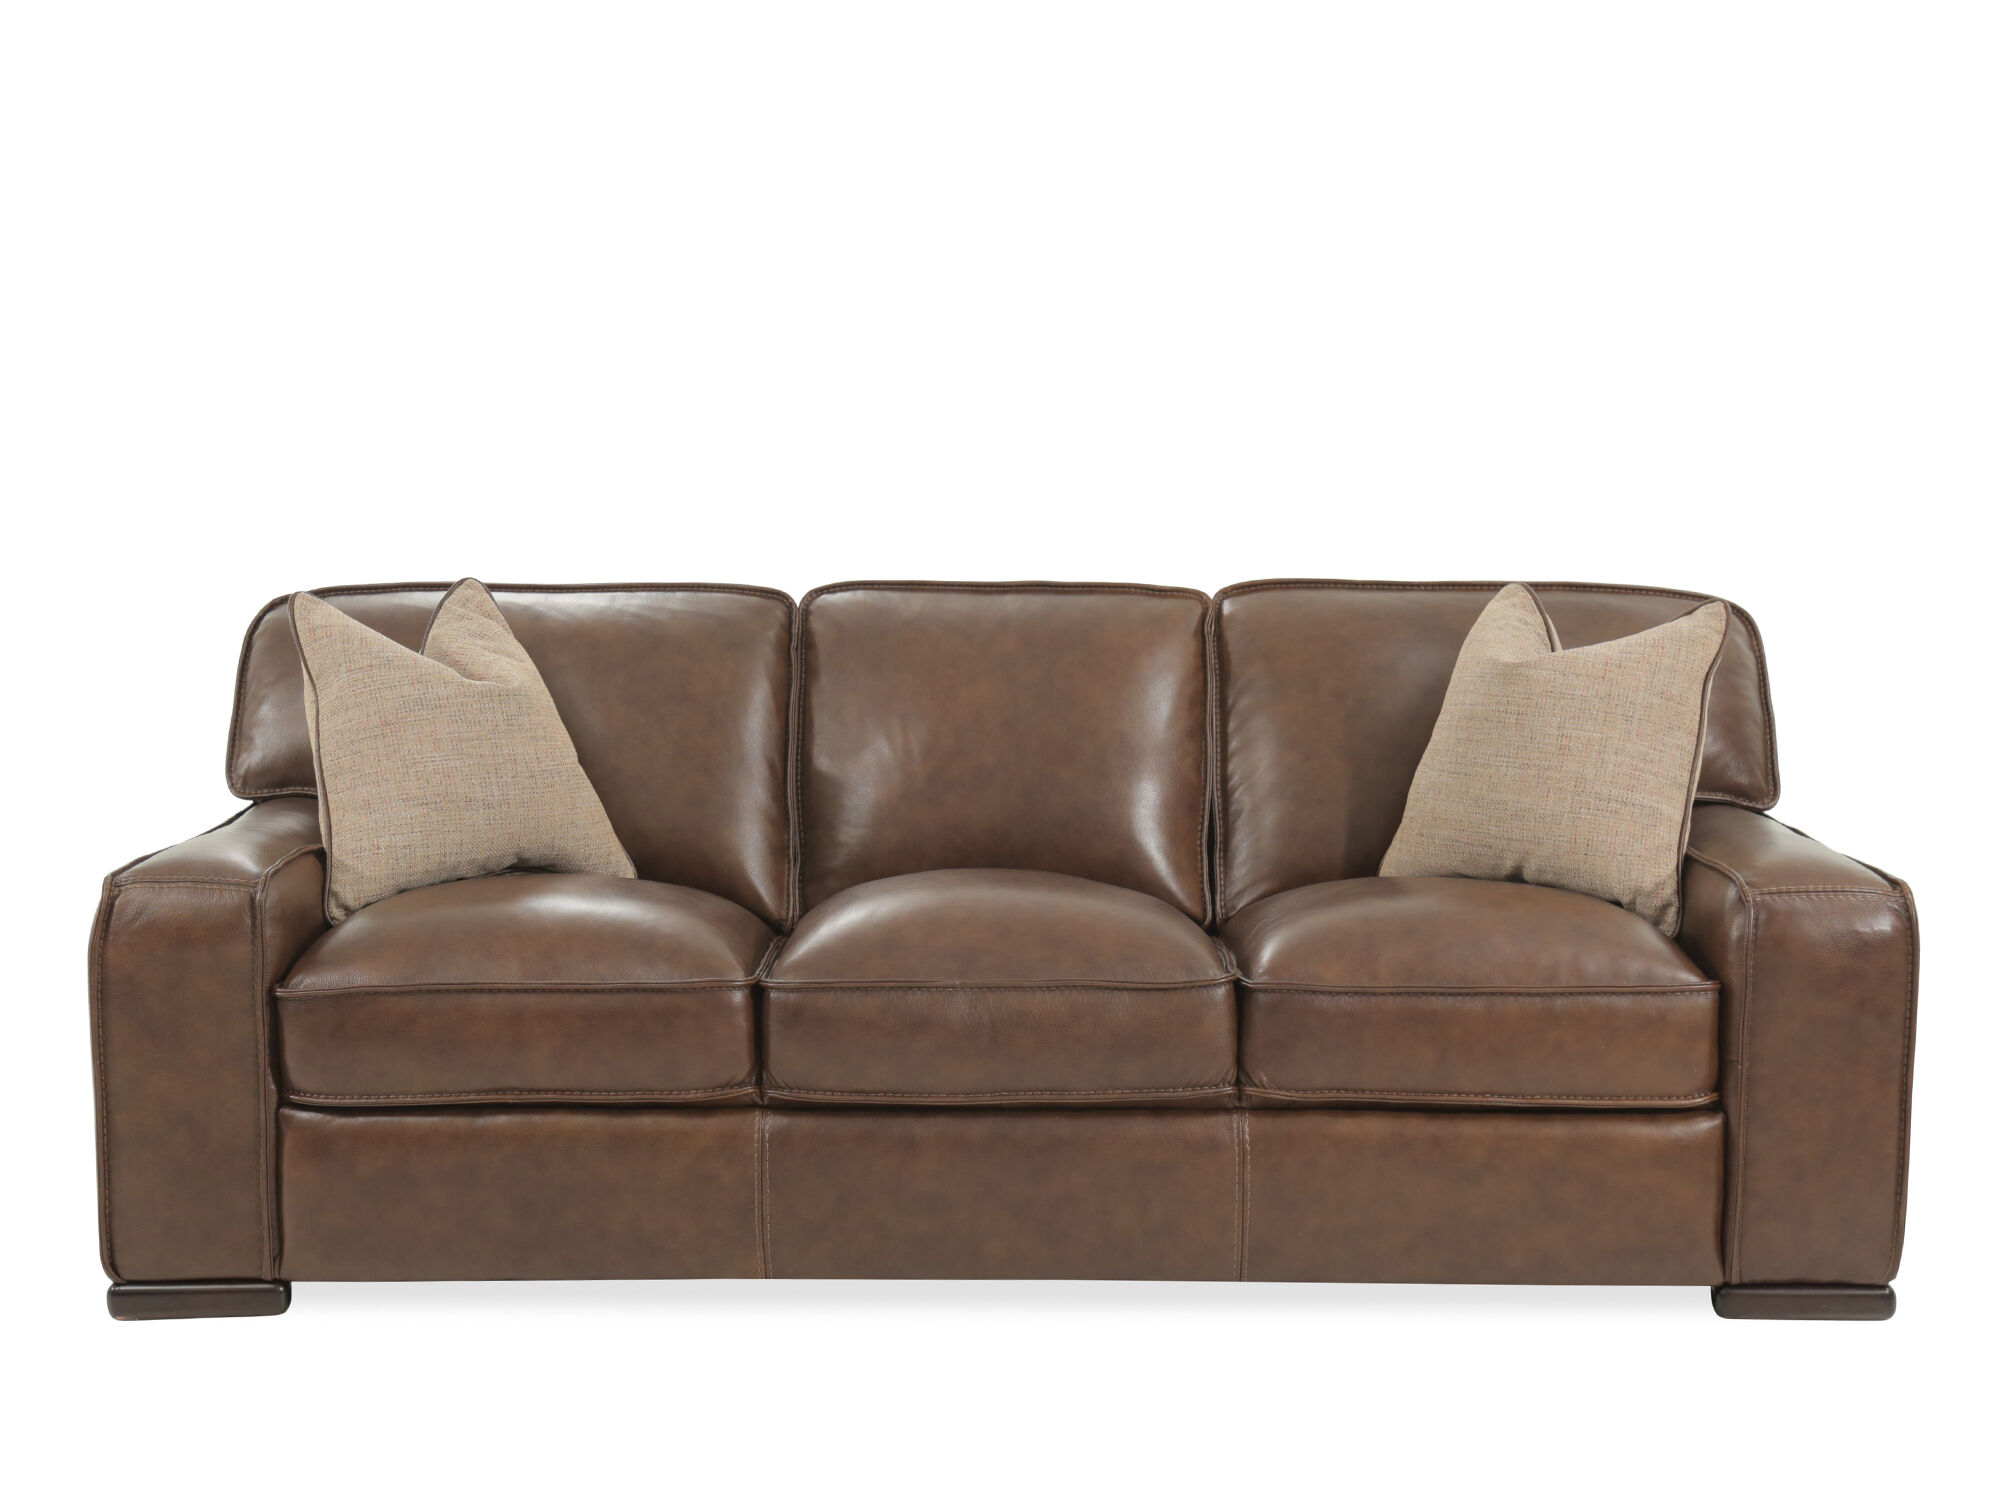 Attrayant Images Traditional 93u0026quot; Leather Sofa In Brown Traditional 93u0026quot;  Leather Sofa In Brown